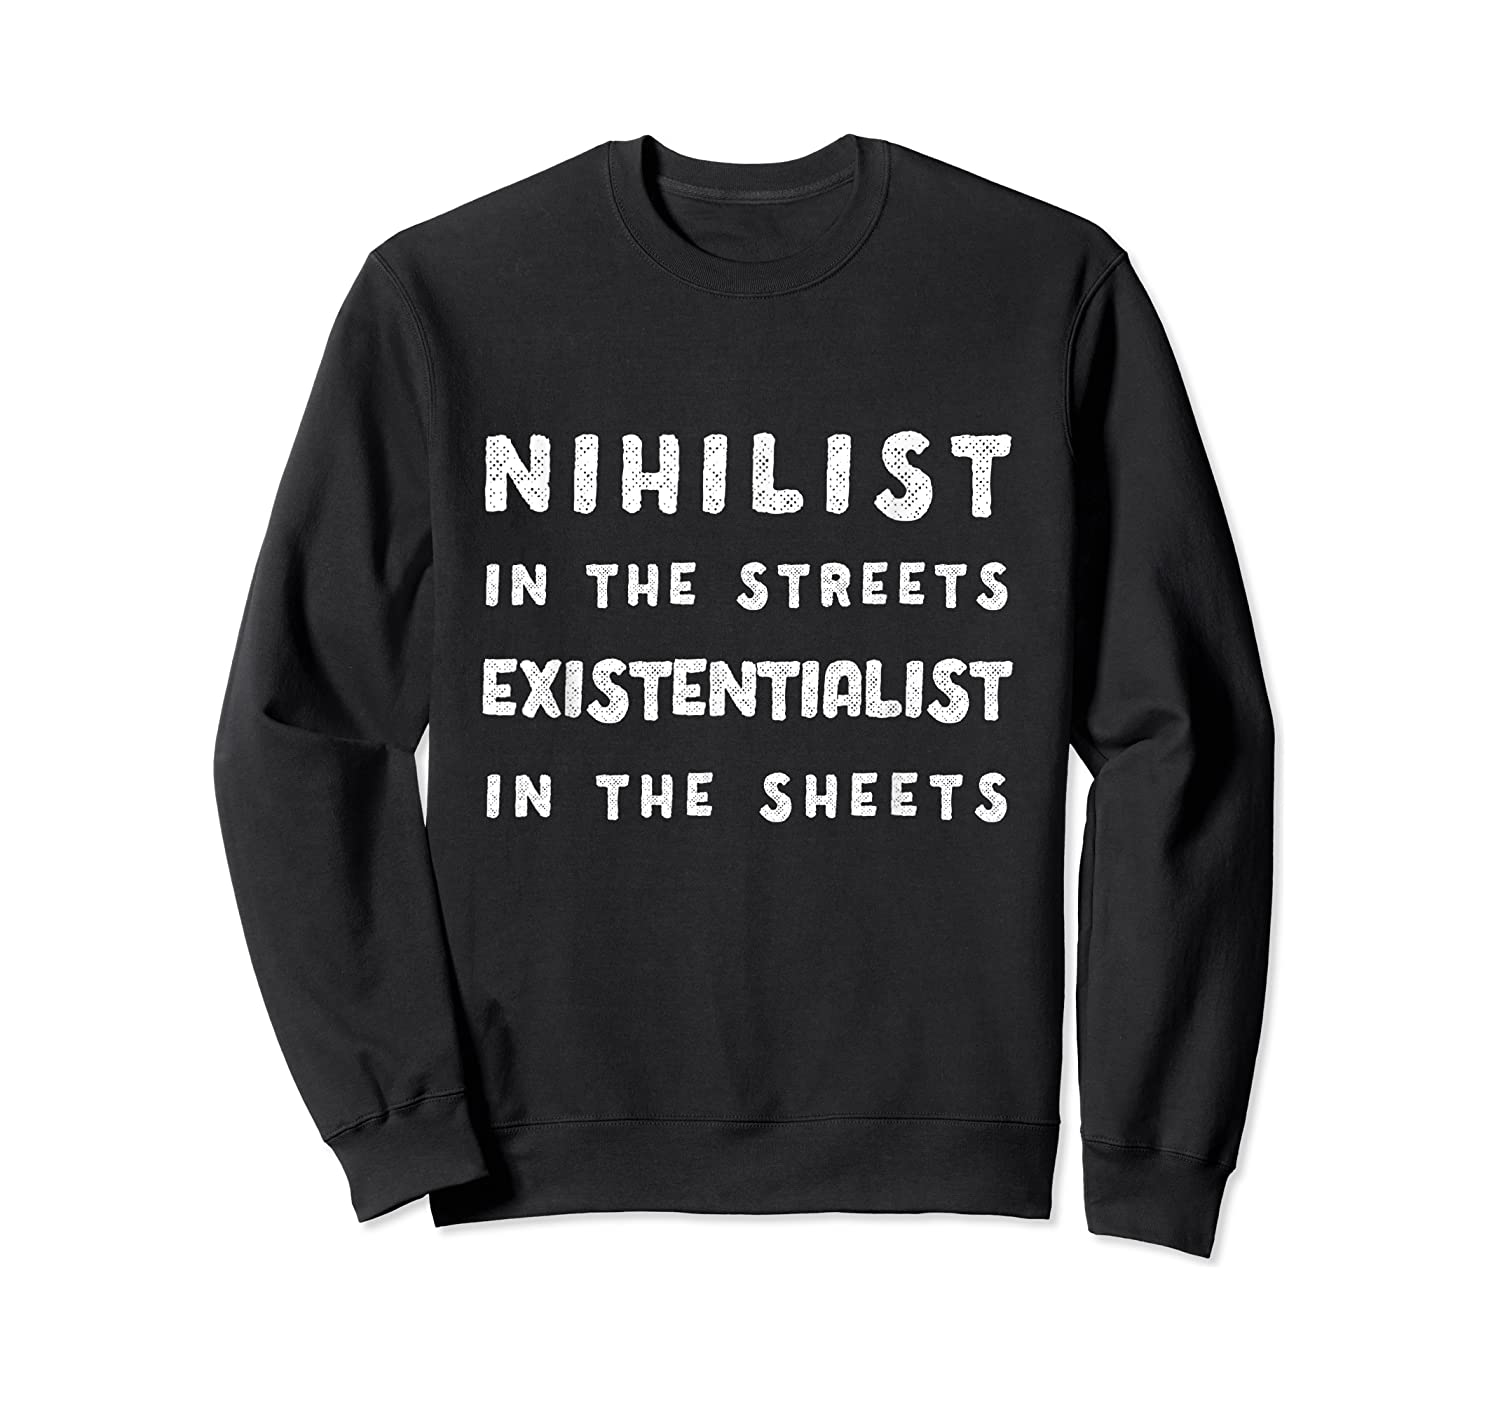 Nihilist In The Streets Existentialist In The Sheets T-shirt Crewneck Sweater